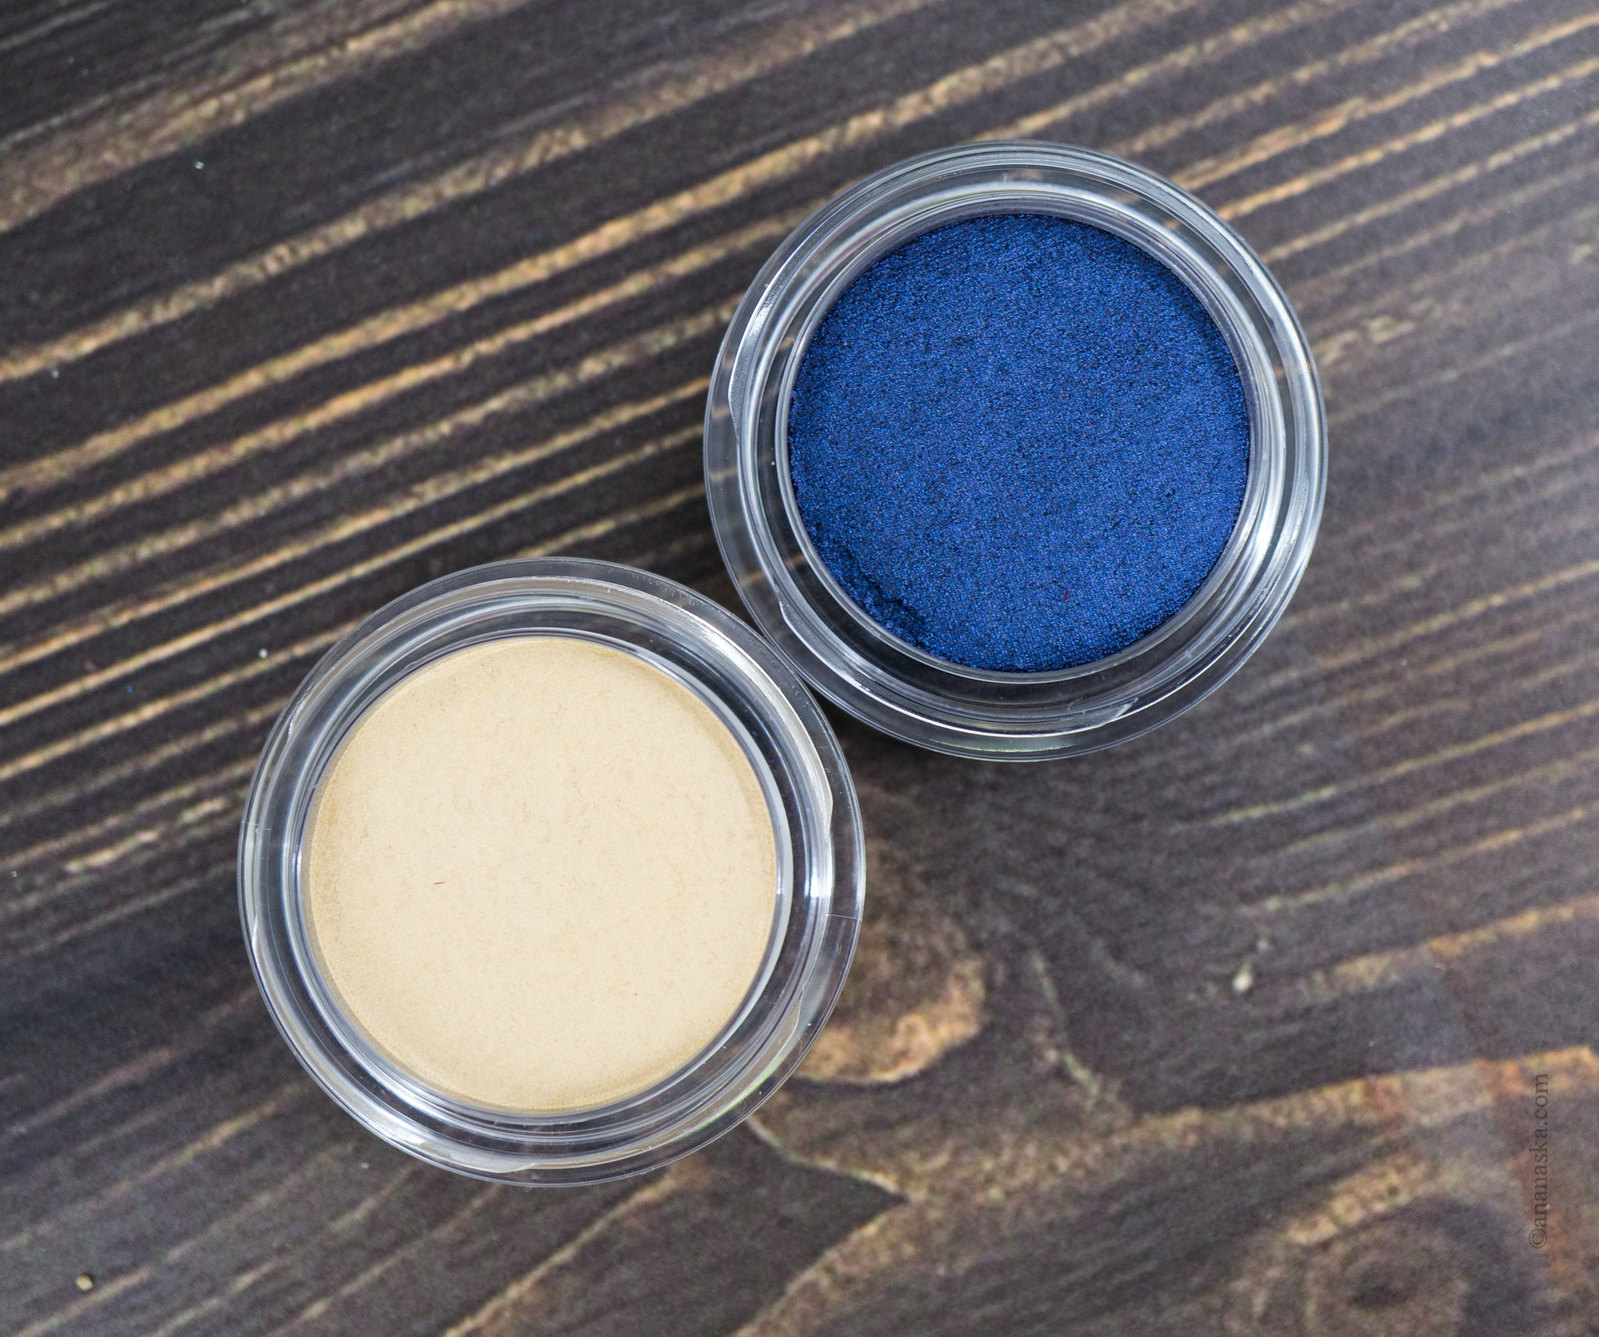 Clarins Ombre Matte: 09 ivory, 10 midnight blue